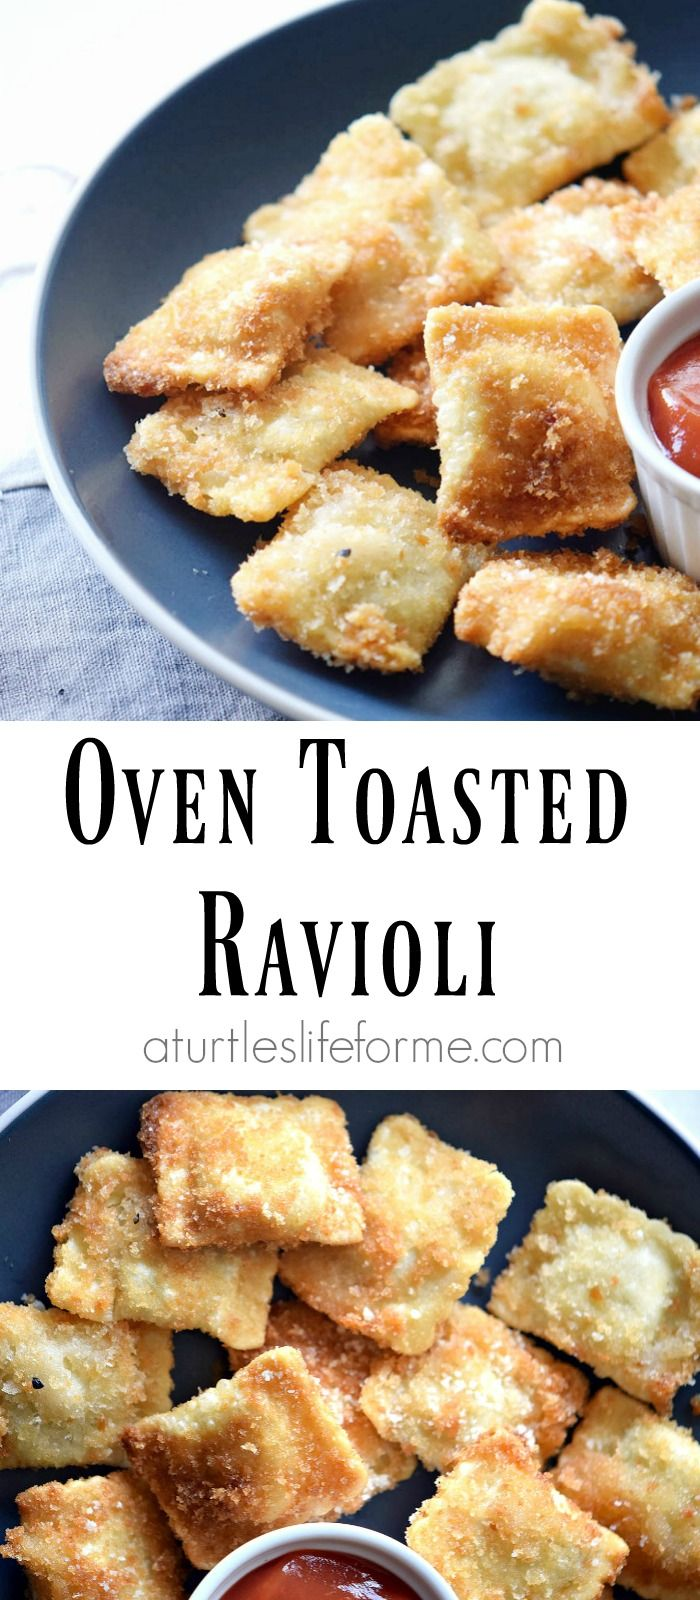 Oven Toasted Ravioli Recipe that can be used as an appetizer or a main course! Either way, it's delicious!